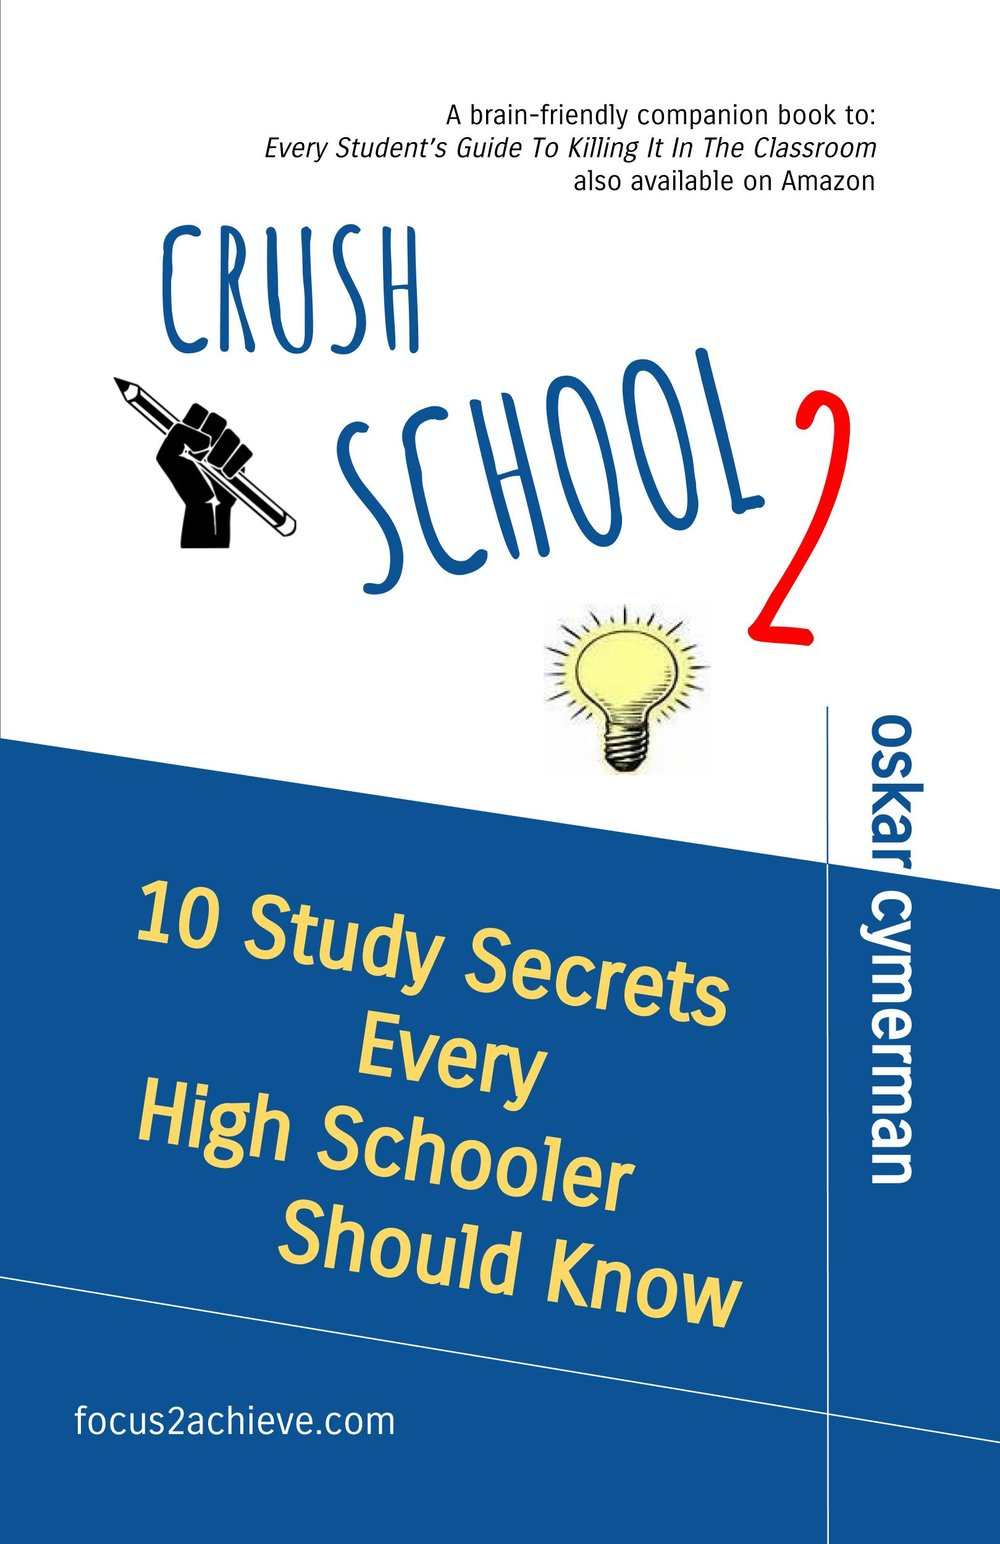 Crush School 2: 10 Study Secrets Every High Schooler Should Know - FREE BOOK PDF